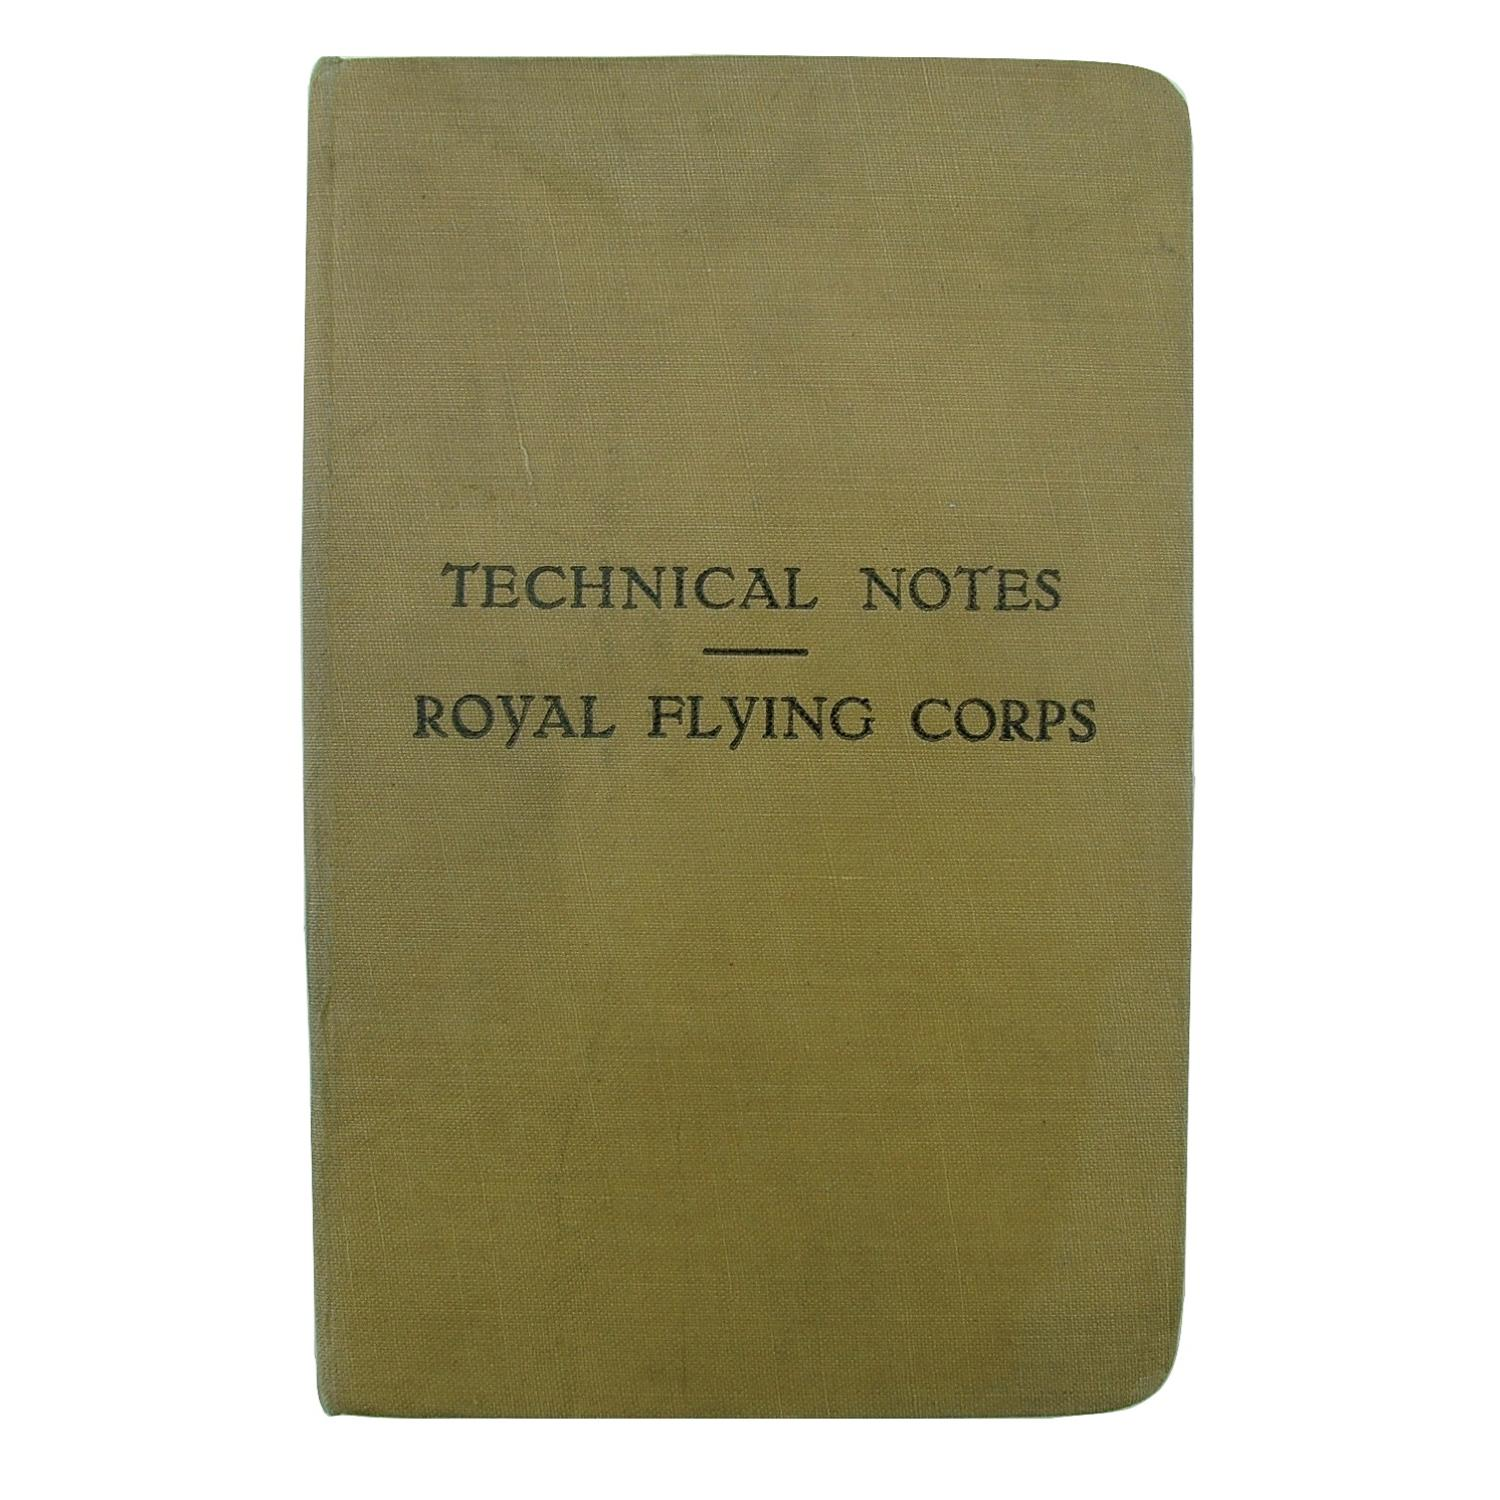 Royal Flying Corps - technical notes